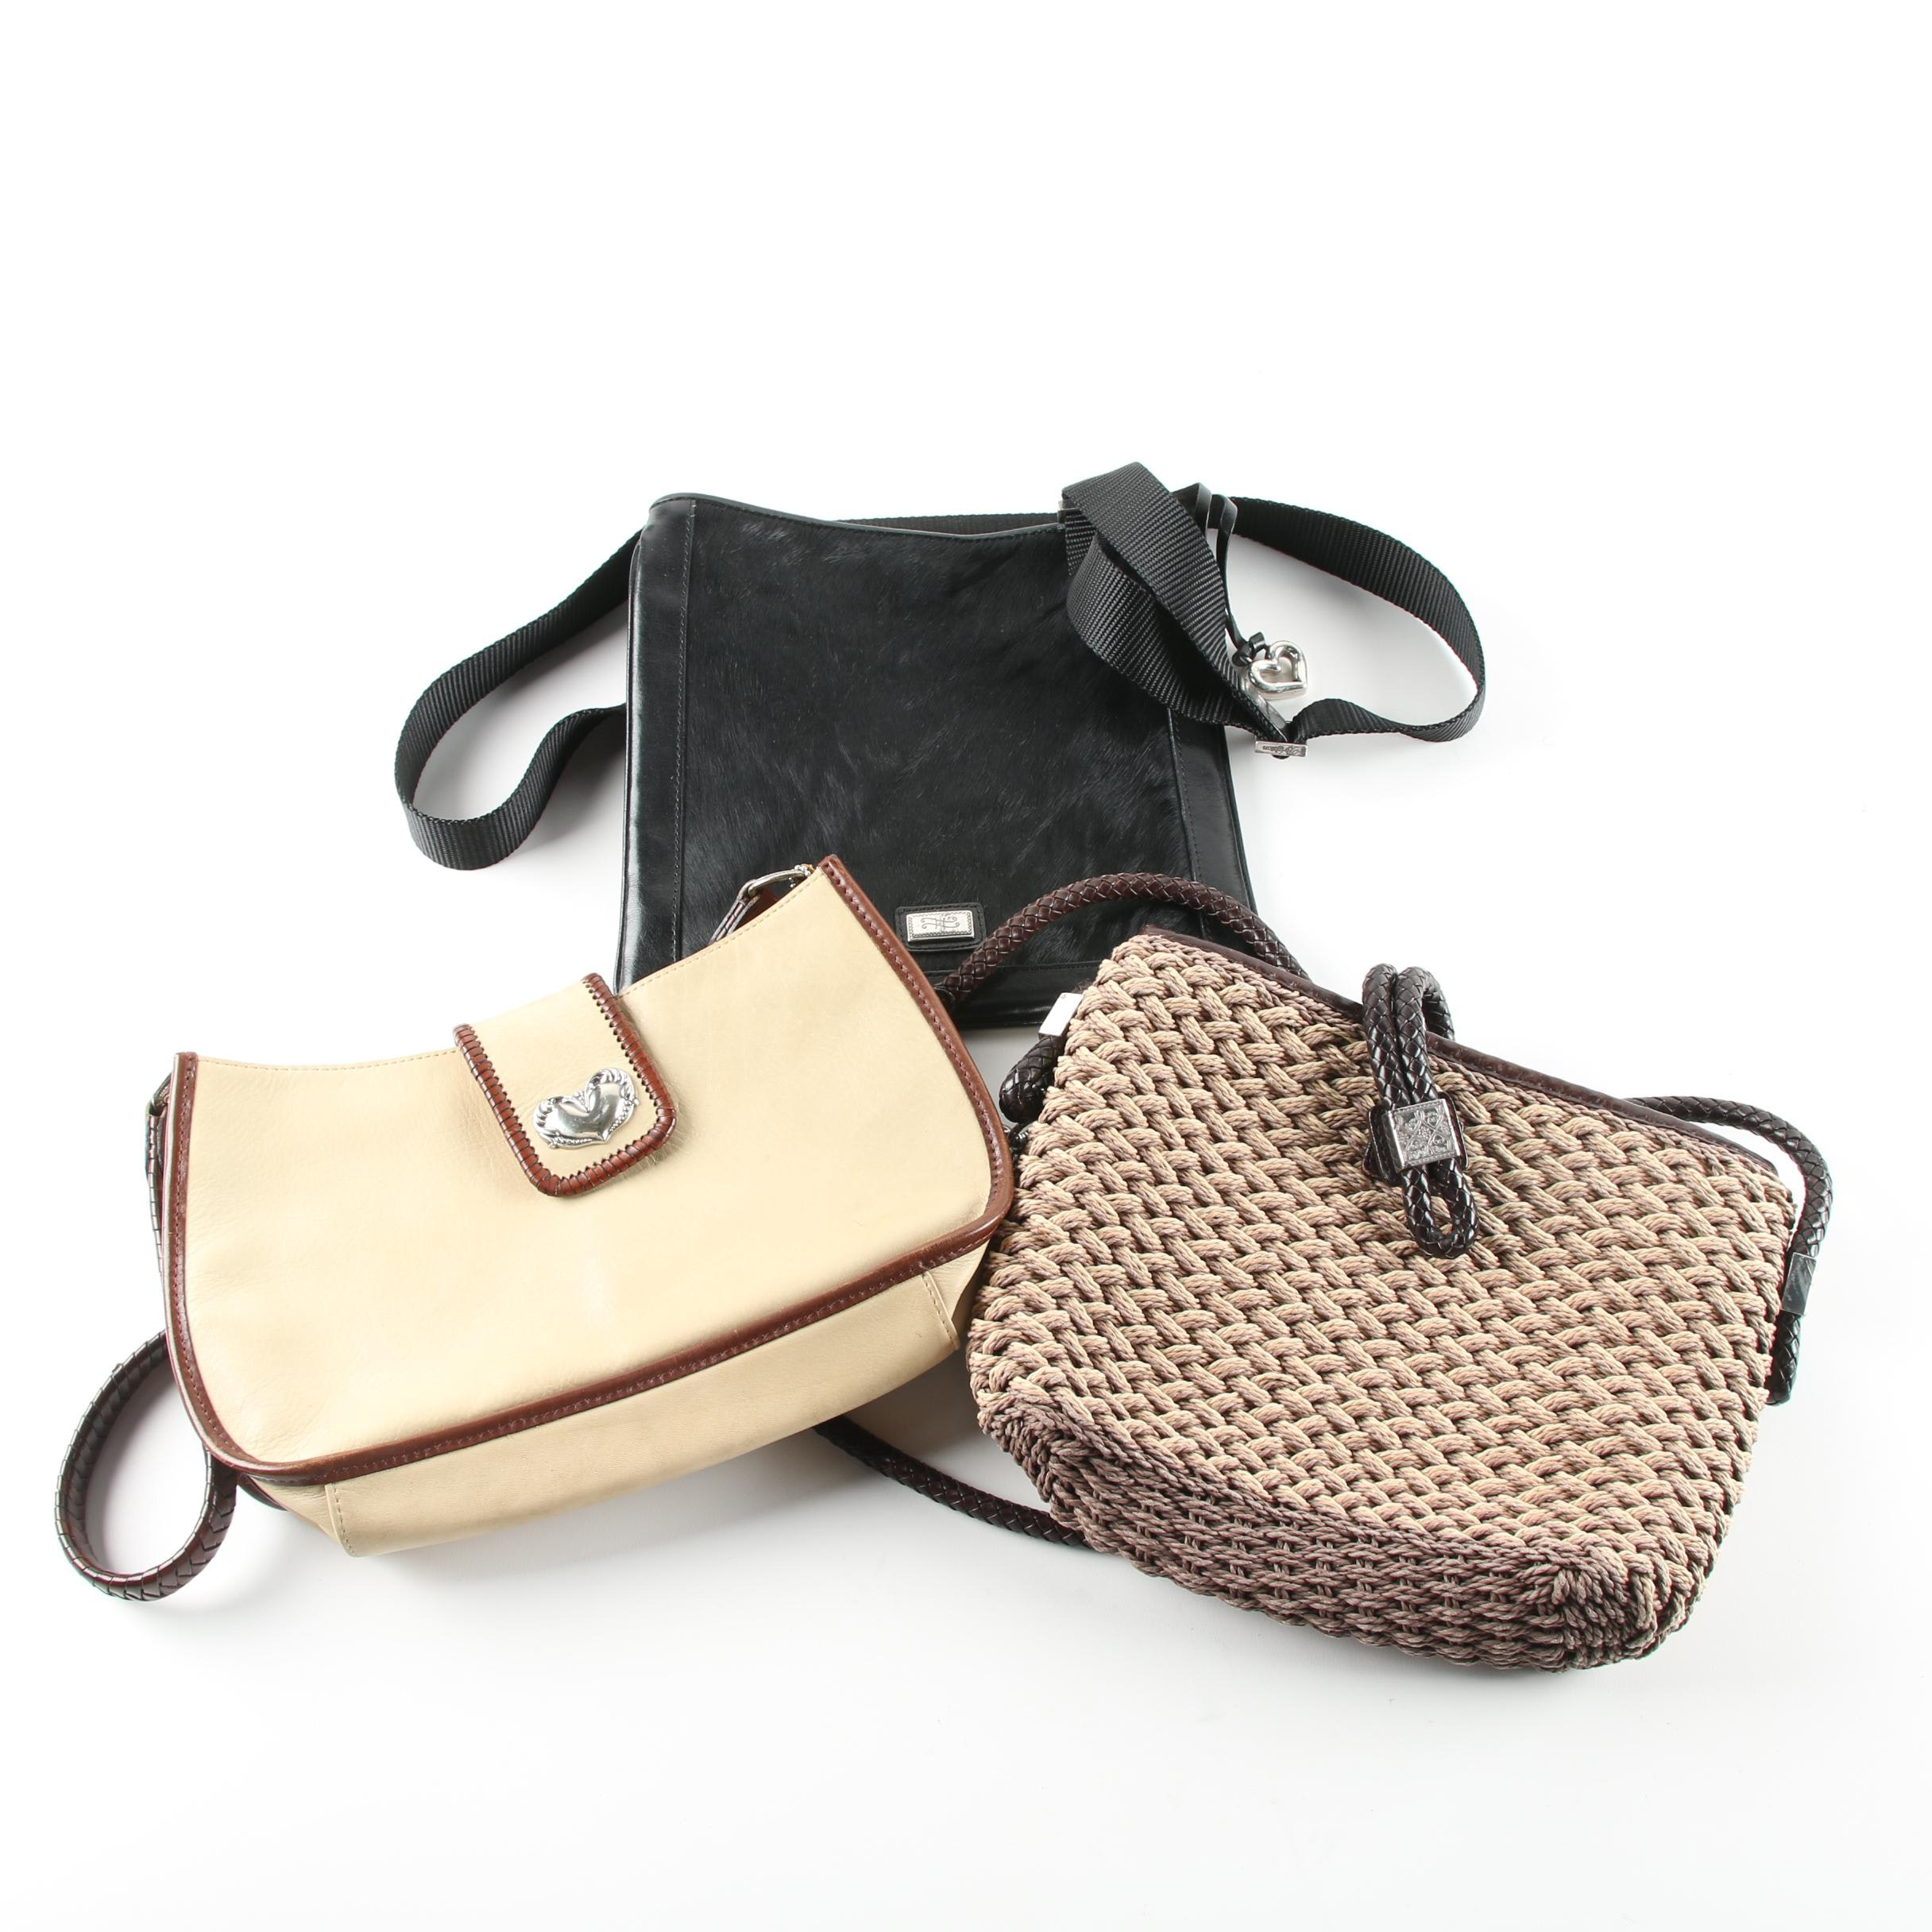 Leather and Raffia Handbags Including Brighton and Fossil